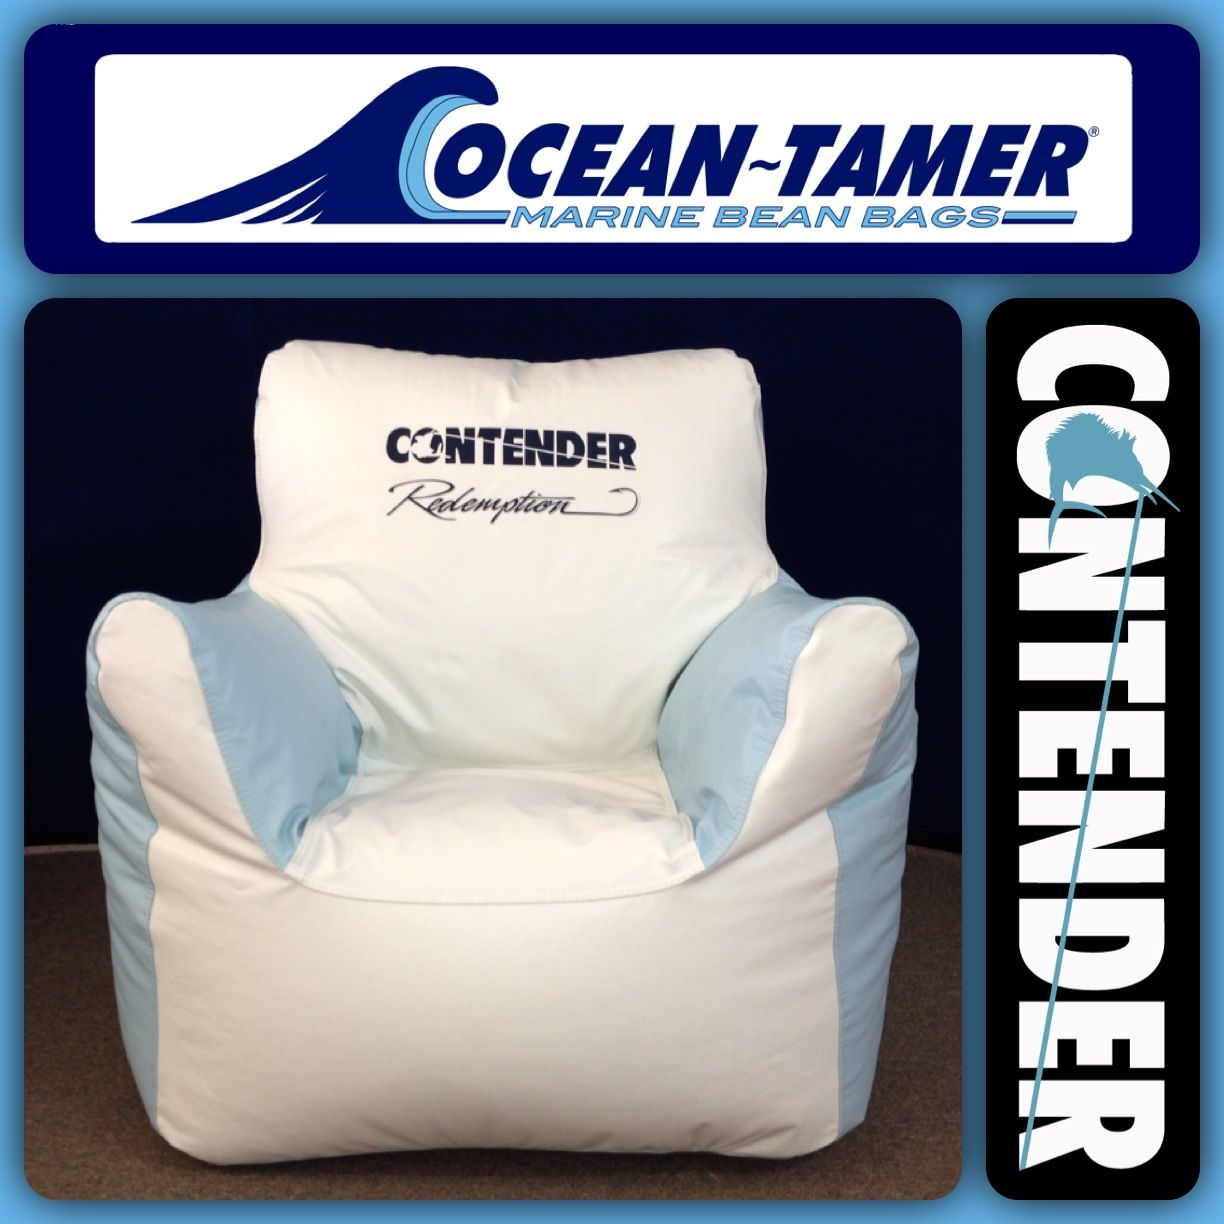 Boat Bean Bag Chairs Swivel Glider Living Room Ocean Tamer Armchair Marine With A Custom